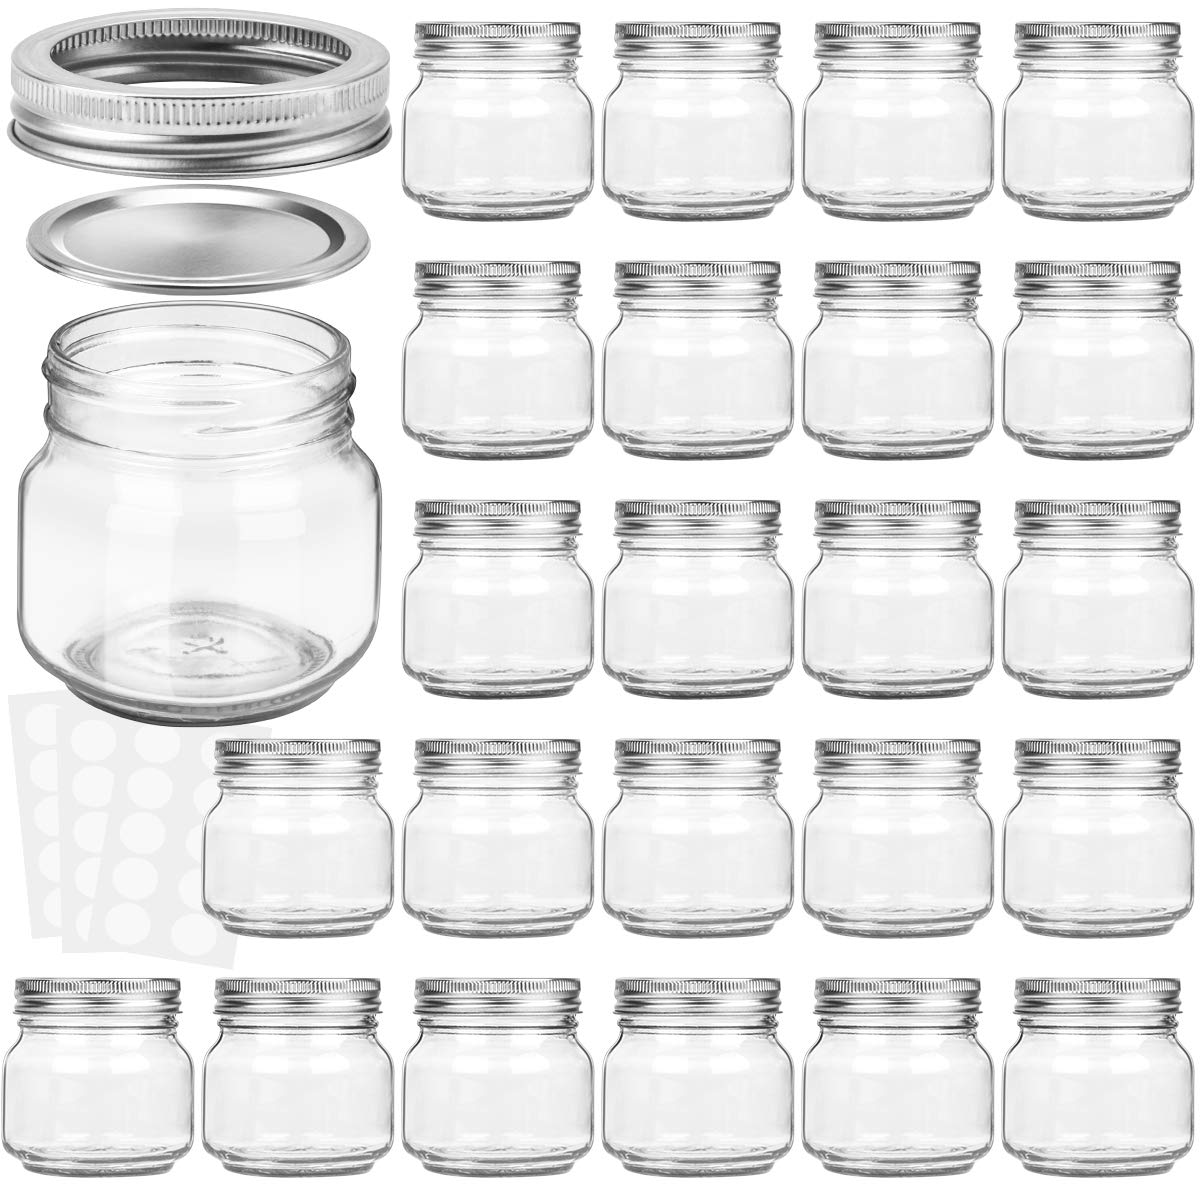 KAMOTA Mason Jars 8OZ With Regular Silver Lids and Bands, Ideal for Jam, Honey, Wedding Favors, Shower Favors, Baby Foods, DIY Magnetic Spice Jars, 24 PACK, 30 Whiteboard Labels Included by KAMOTA